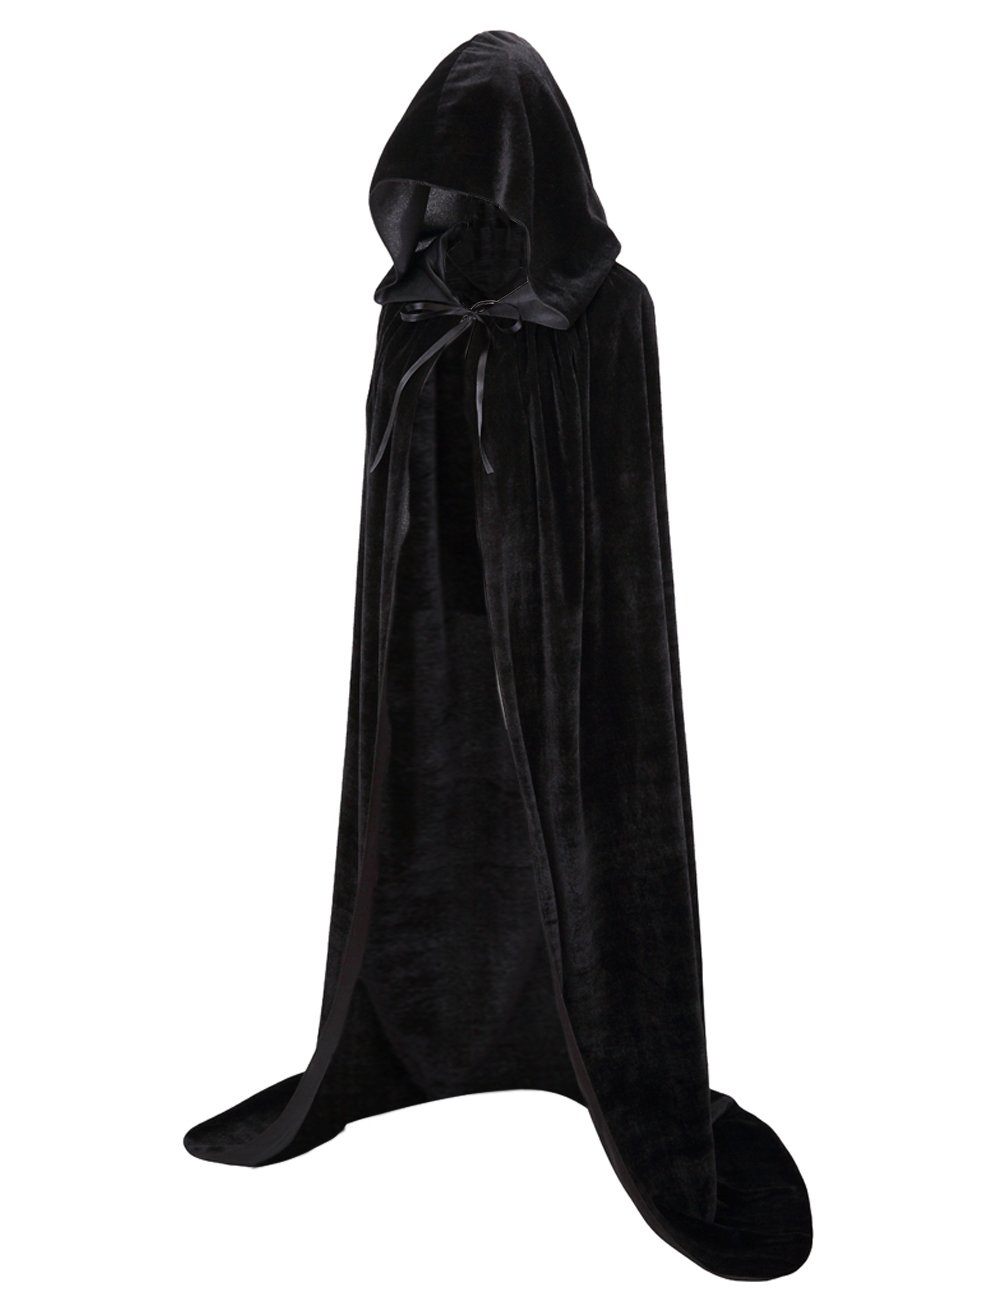 Colorful House Unisex Full Length Velvet Hooded Cape Halloween Christmas Cloak